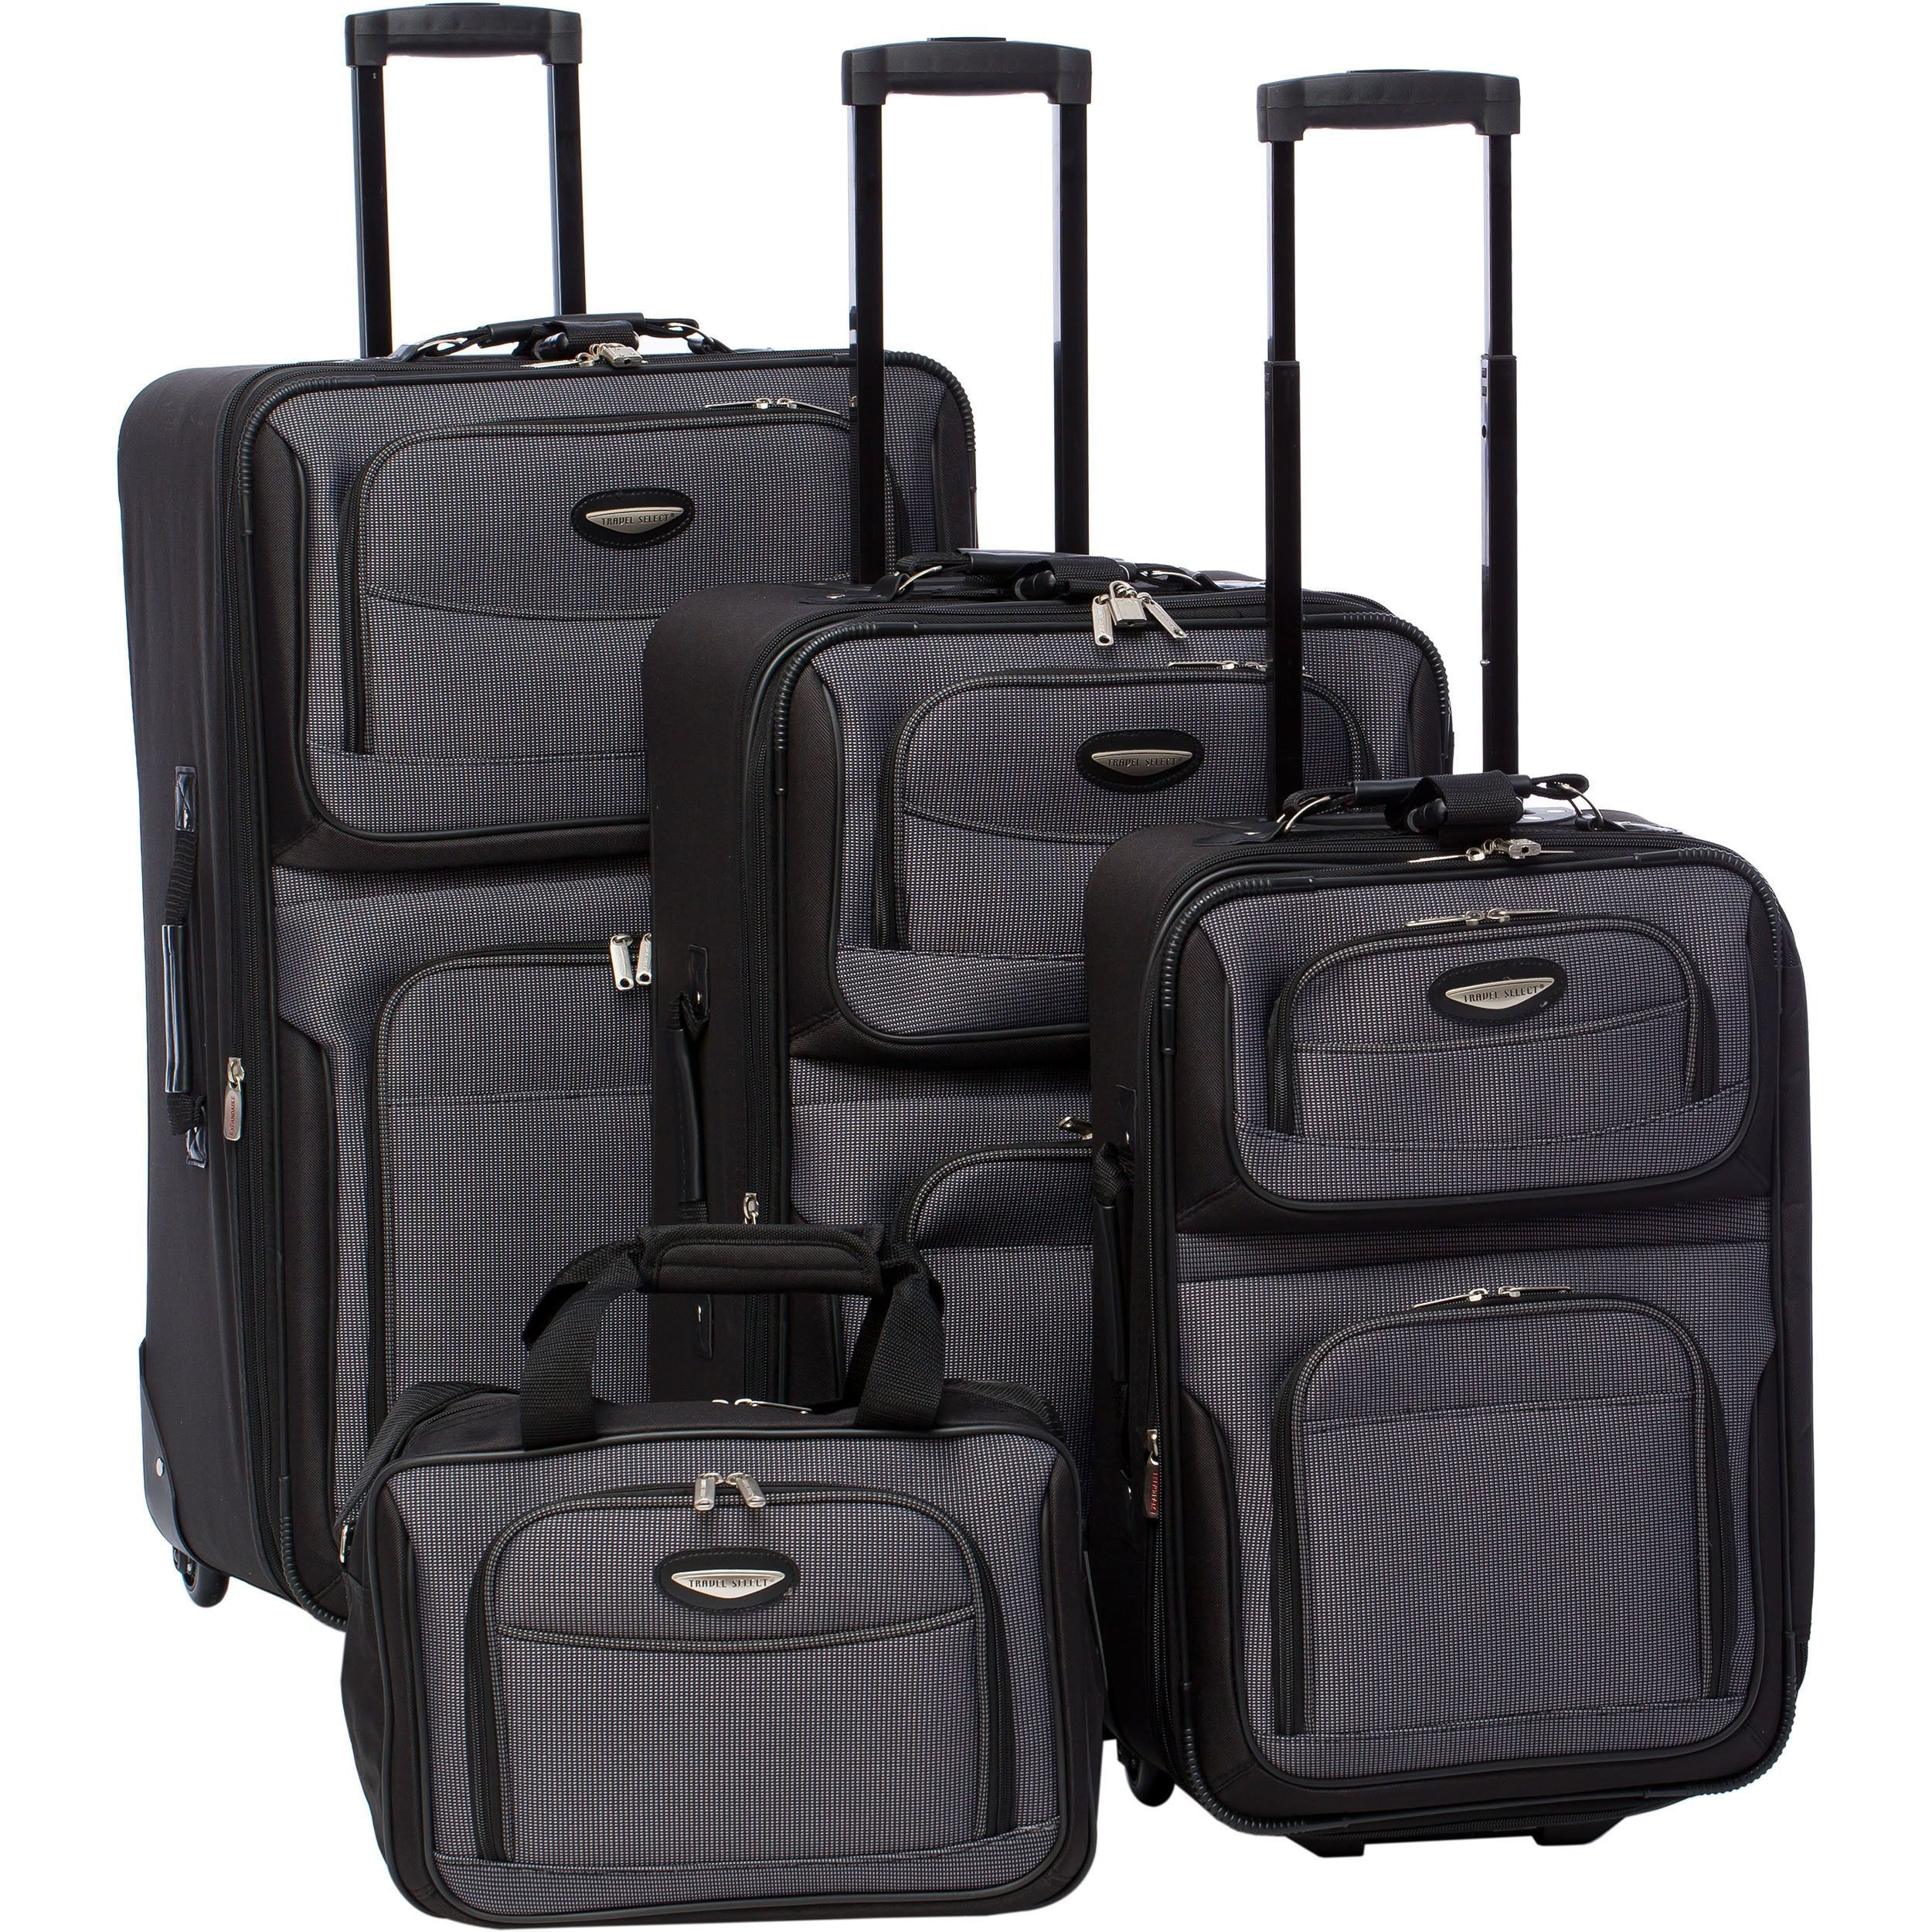 7dbcfb479b Travel Select by Traveler s Choice Amsterdam 4-piece Rolling Expandable  Luggage Set